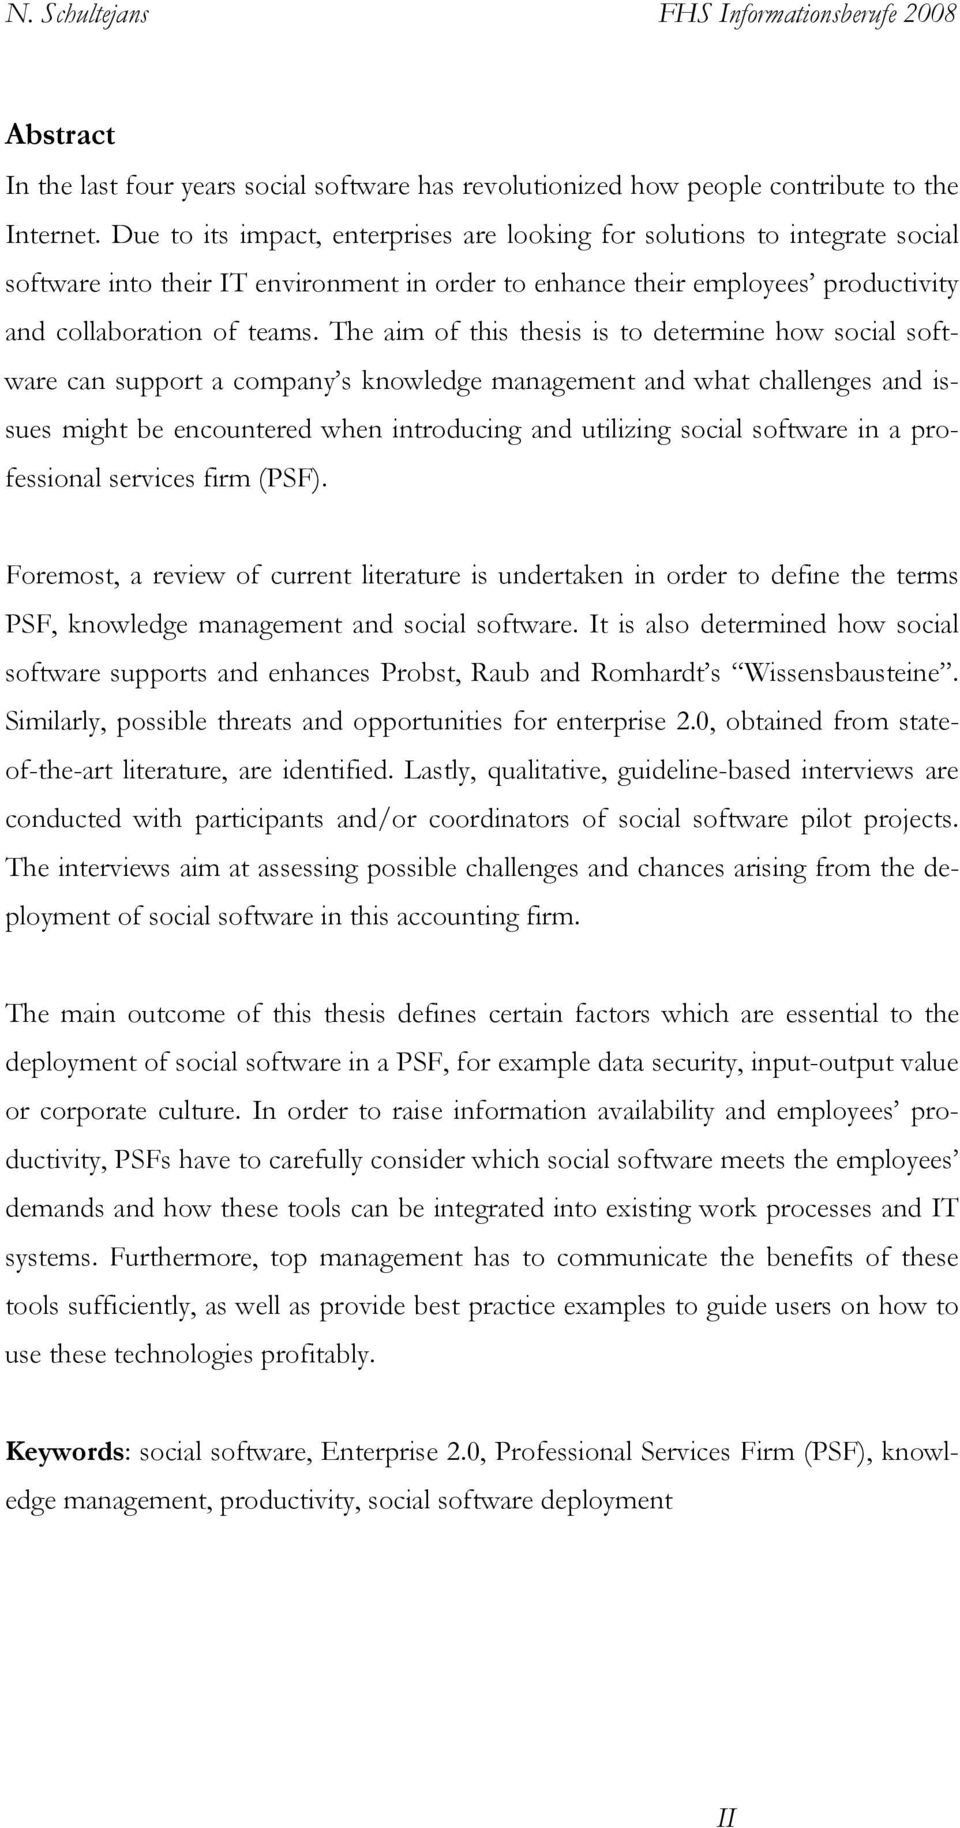 The aim of this thesis is to determine how social software can support a company s knowledge management and what challenges and issues might be encountered when introducing and utilizing social